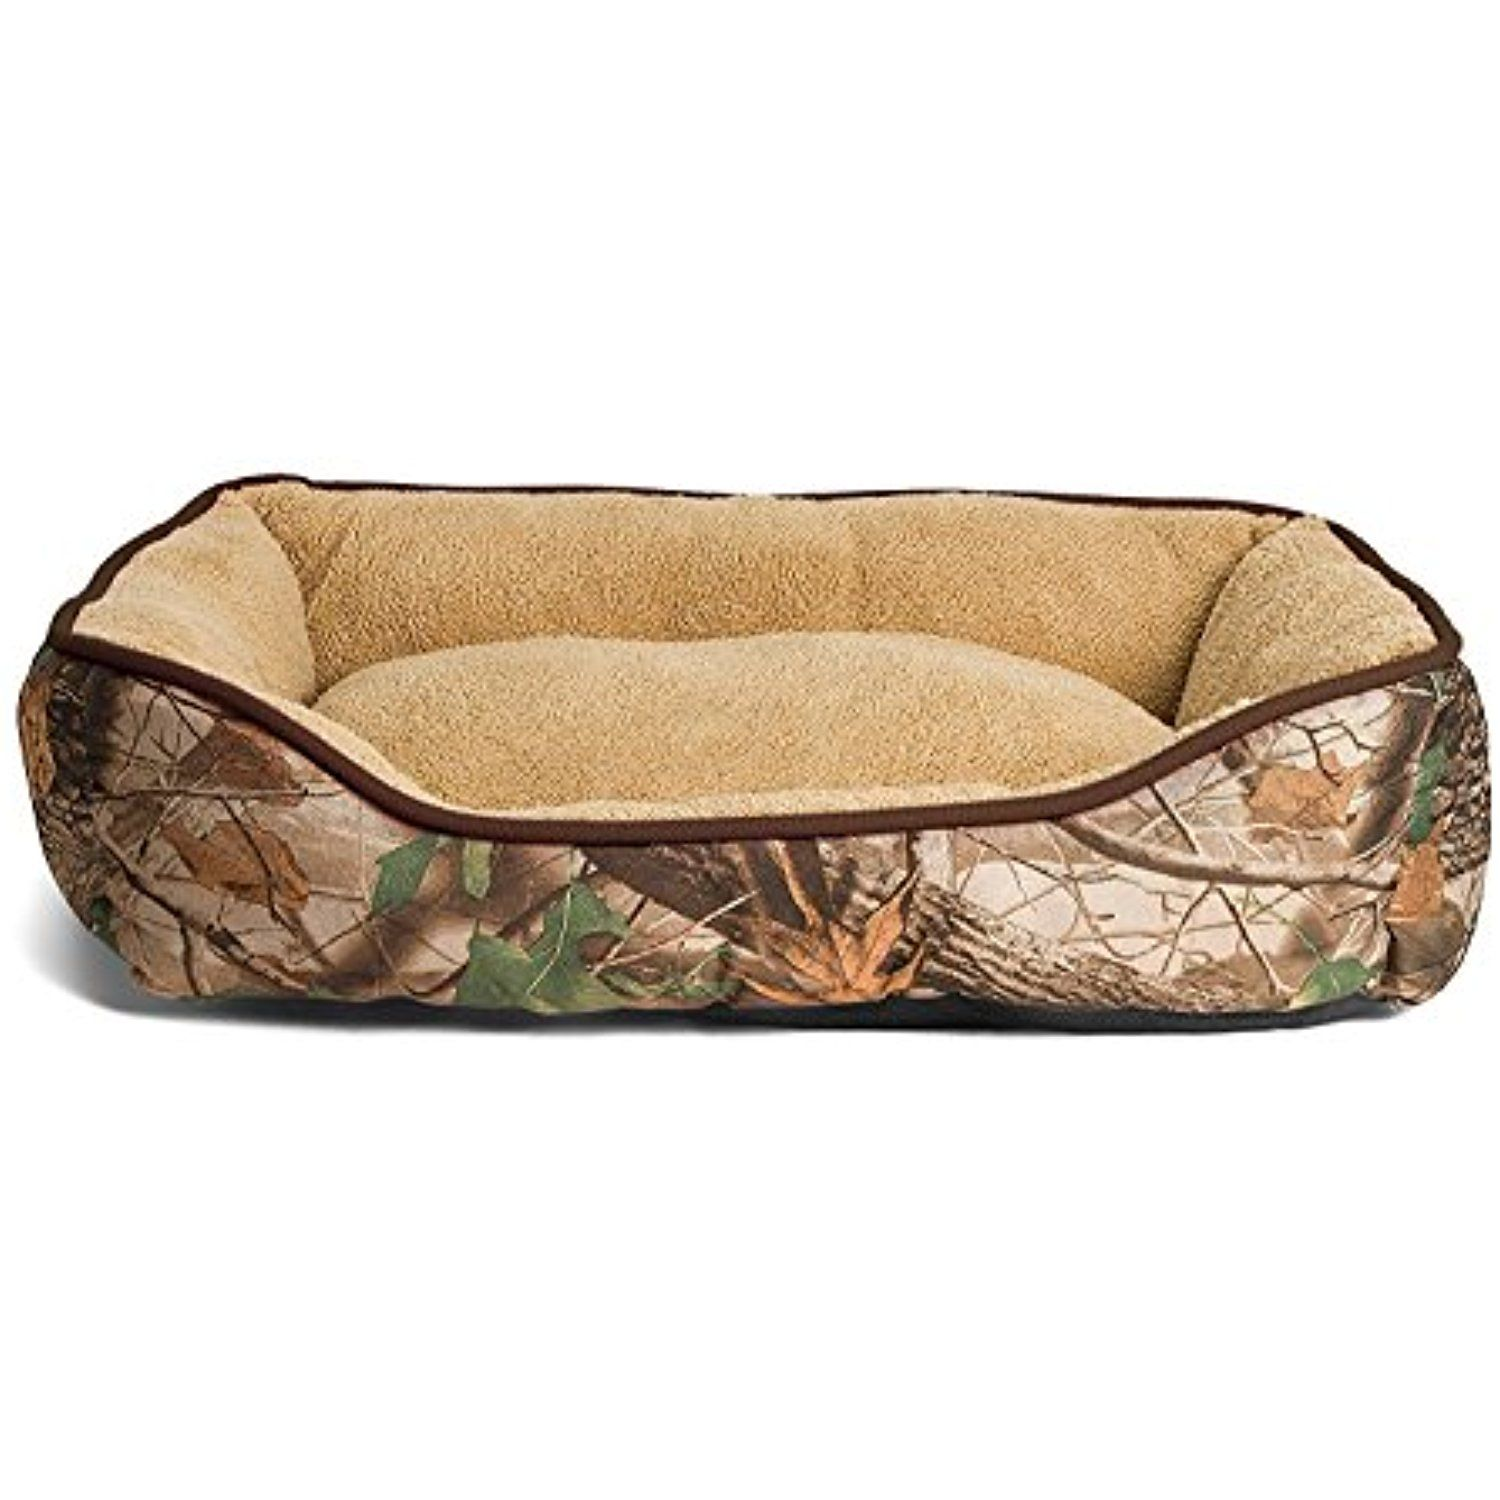 Camouflage Dog Bed — Extra Fluffy, Ecofriendly